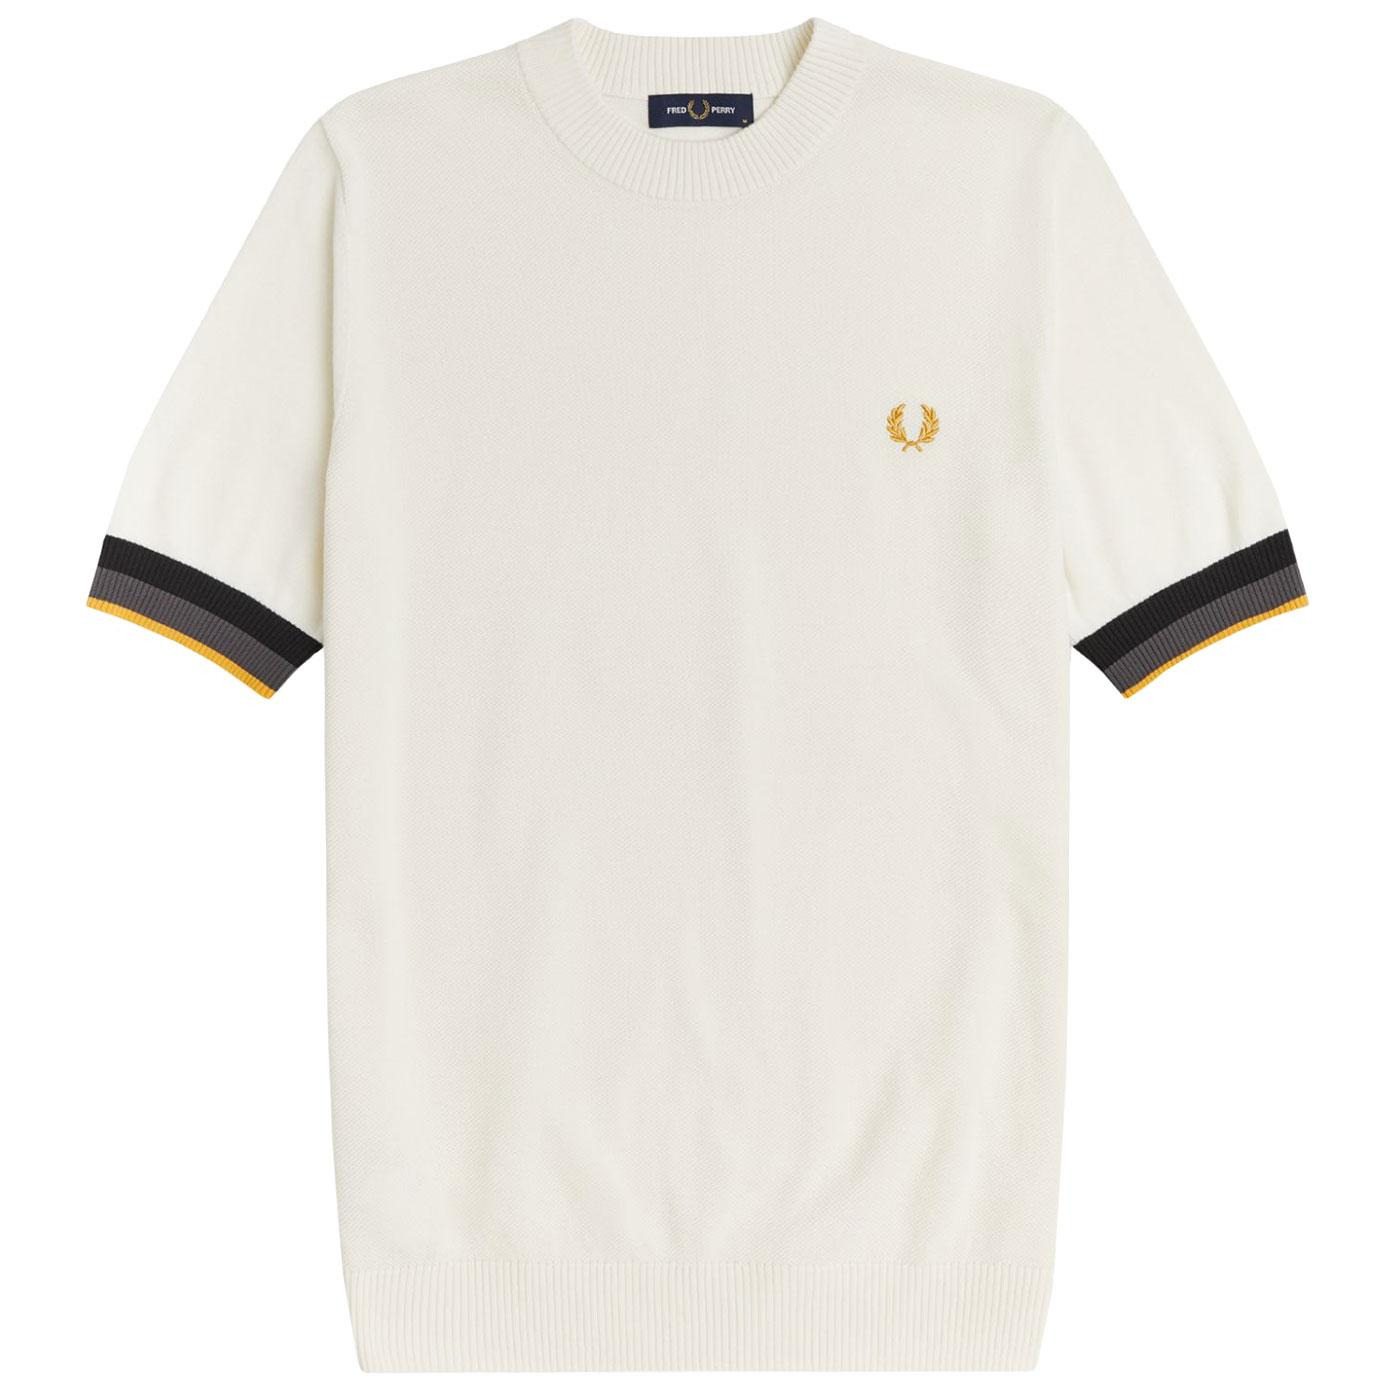 FRED PERRY Mod Striped Cuff Textured Knit T-shirt